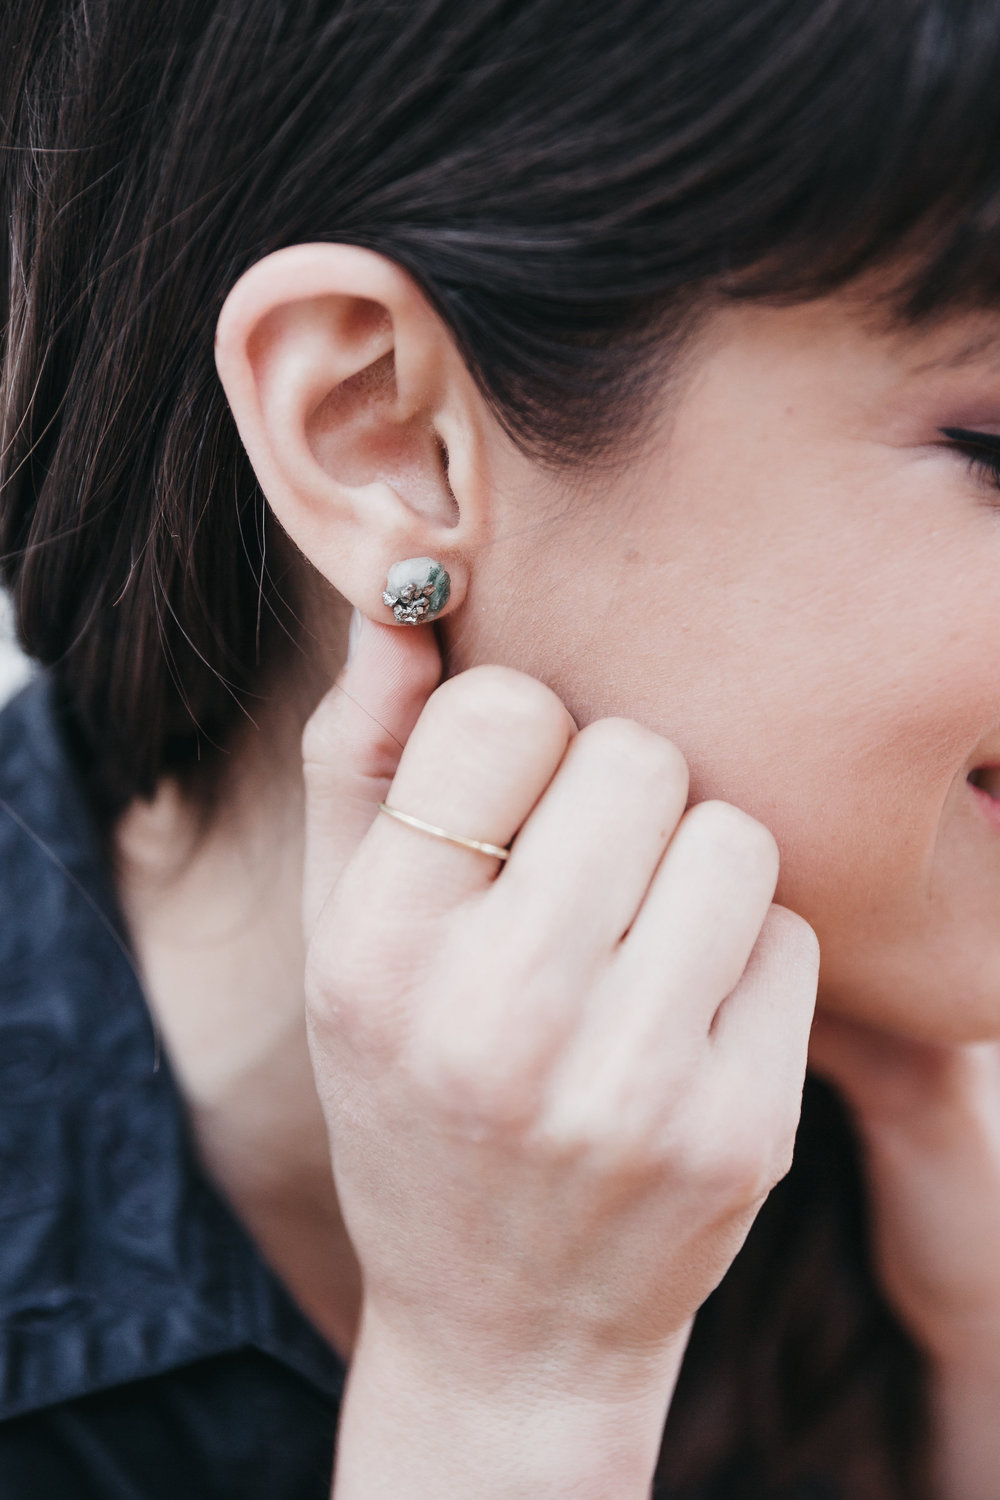 Dear Survivor for-good earrings // A Week Of Bright & Bold Ethical Outfits With Michelle Chavez From Michelle For Good on The Good Trade